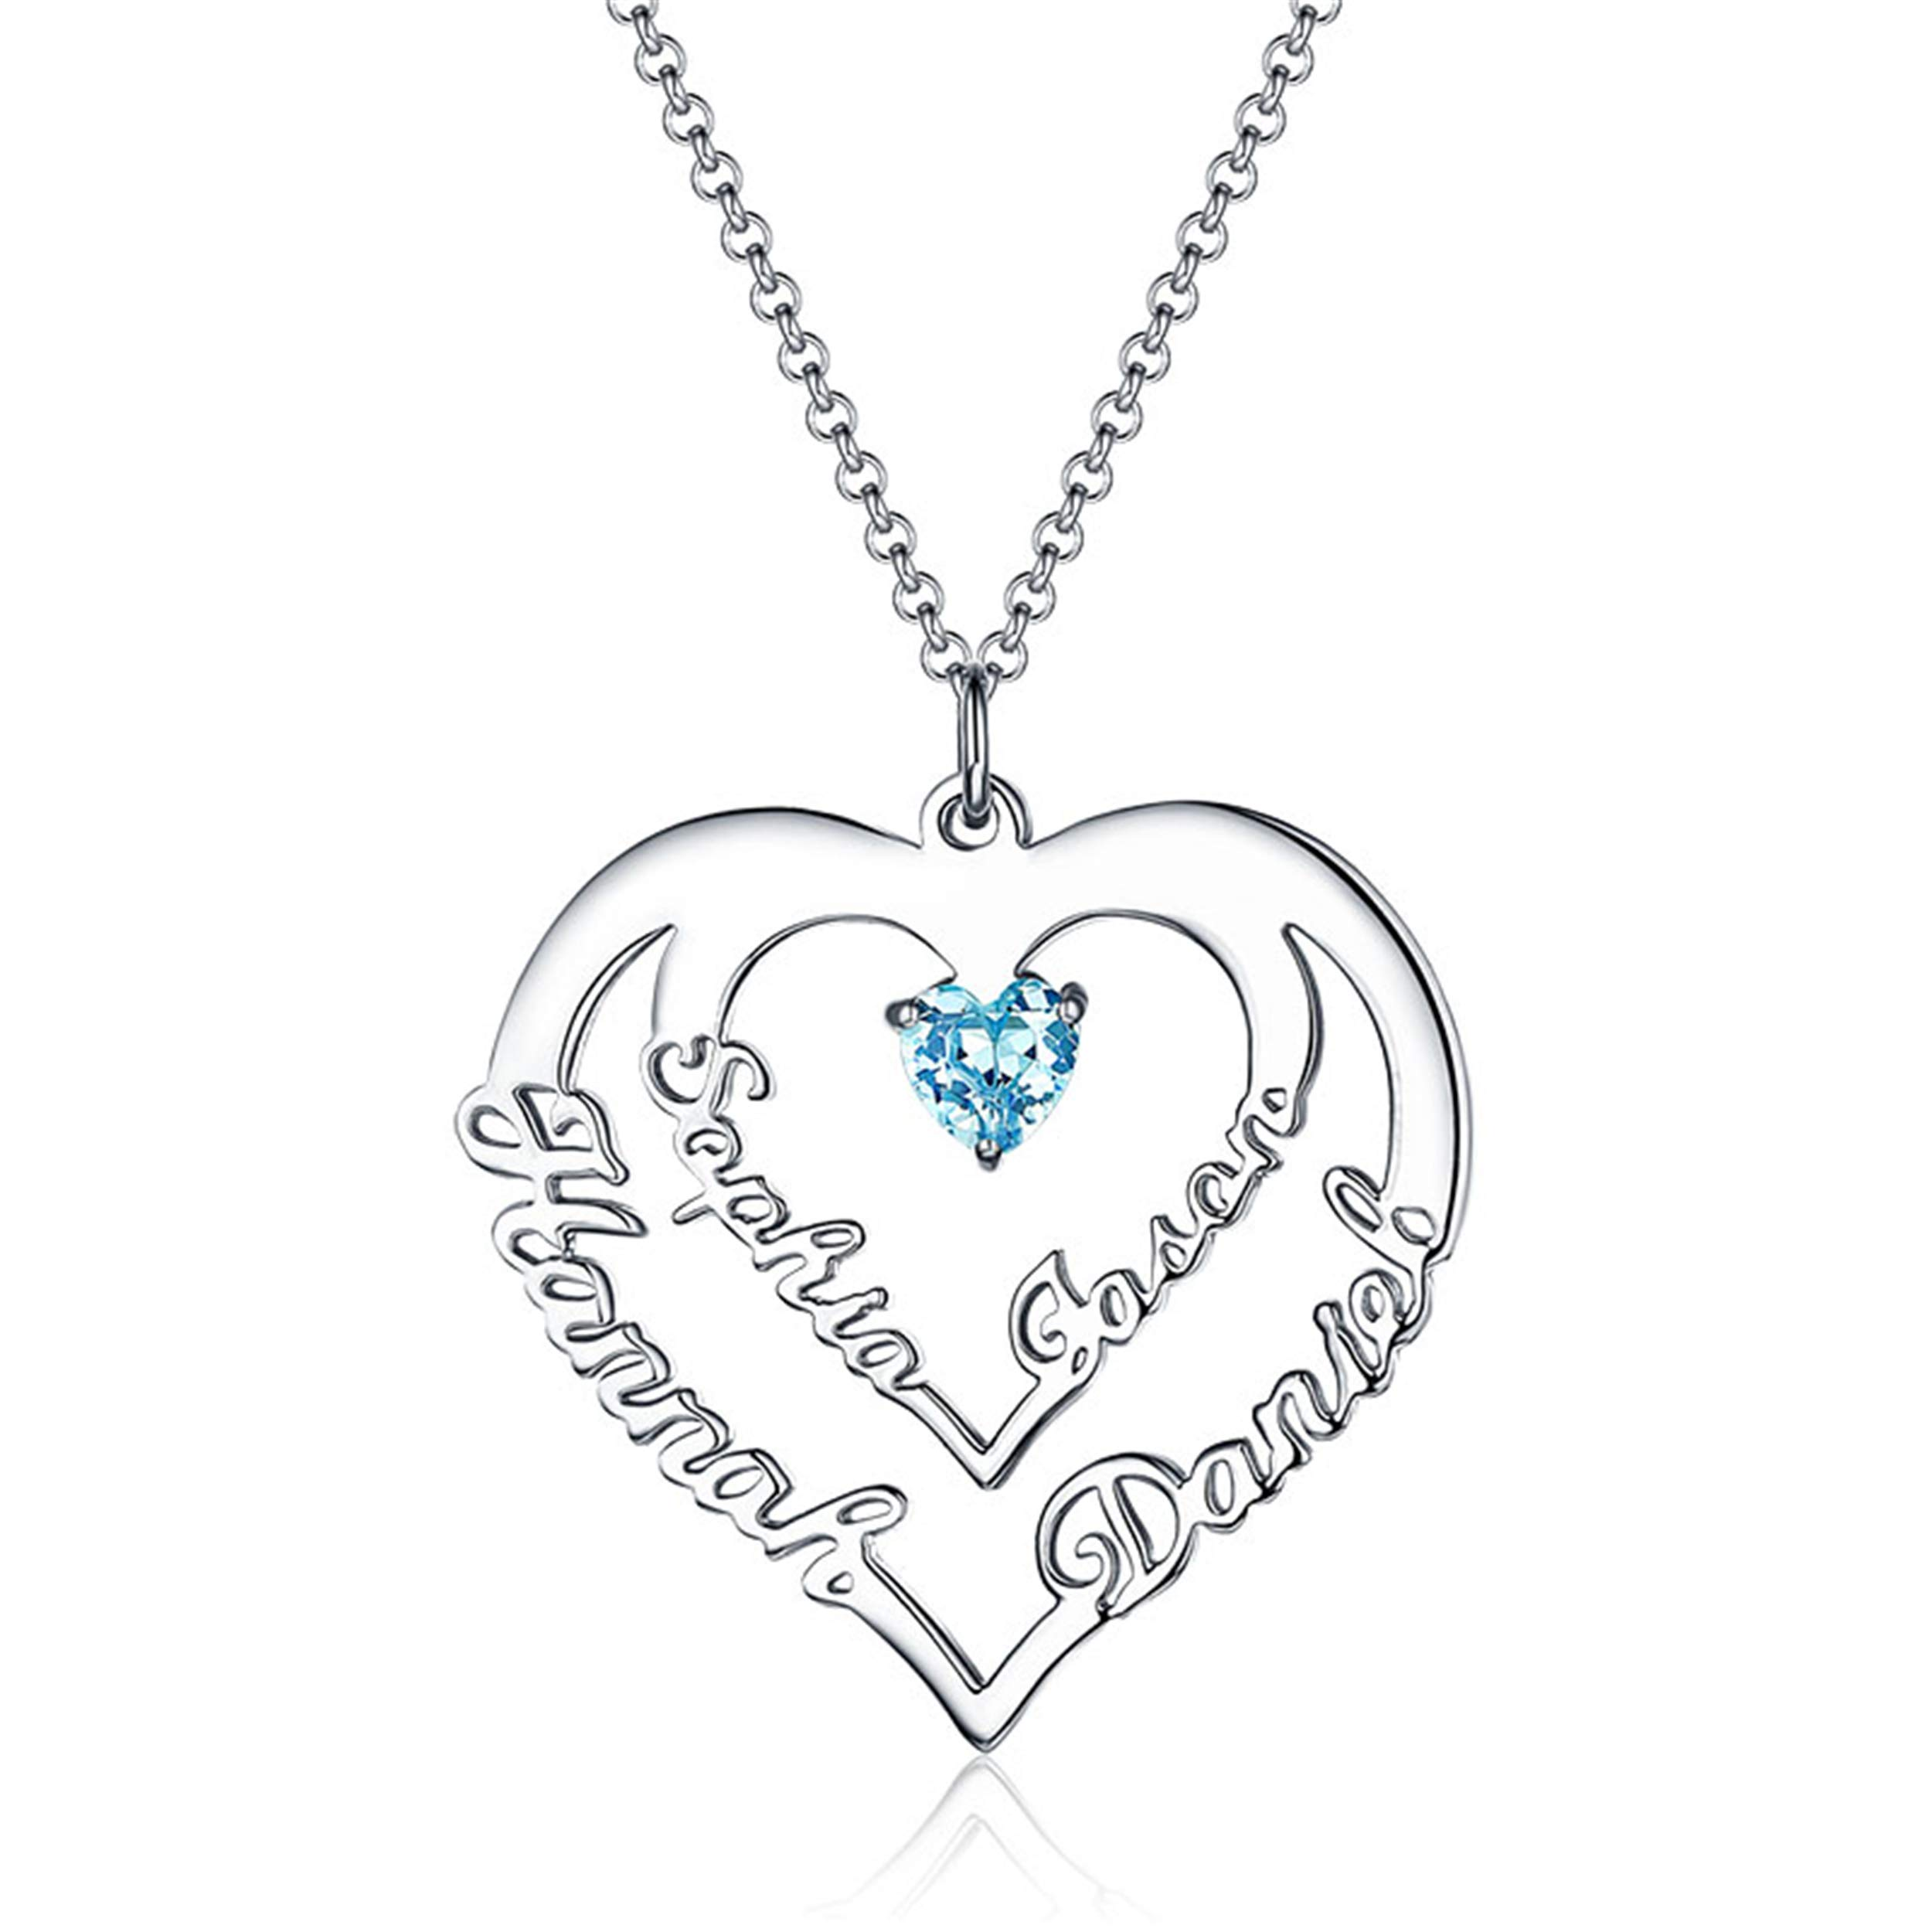 Getname Necklace Womens Personalized Sterling Silver Heart Necklace with 4 Names Birthstones Family Necklace for Mom Silver 20